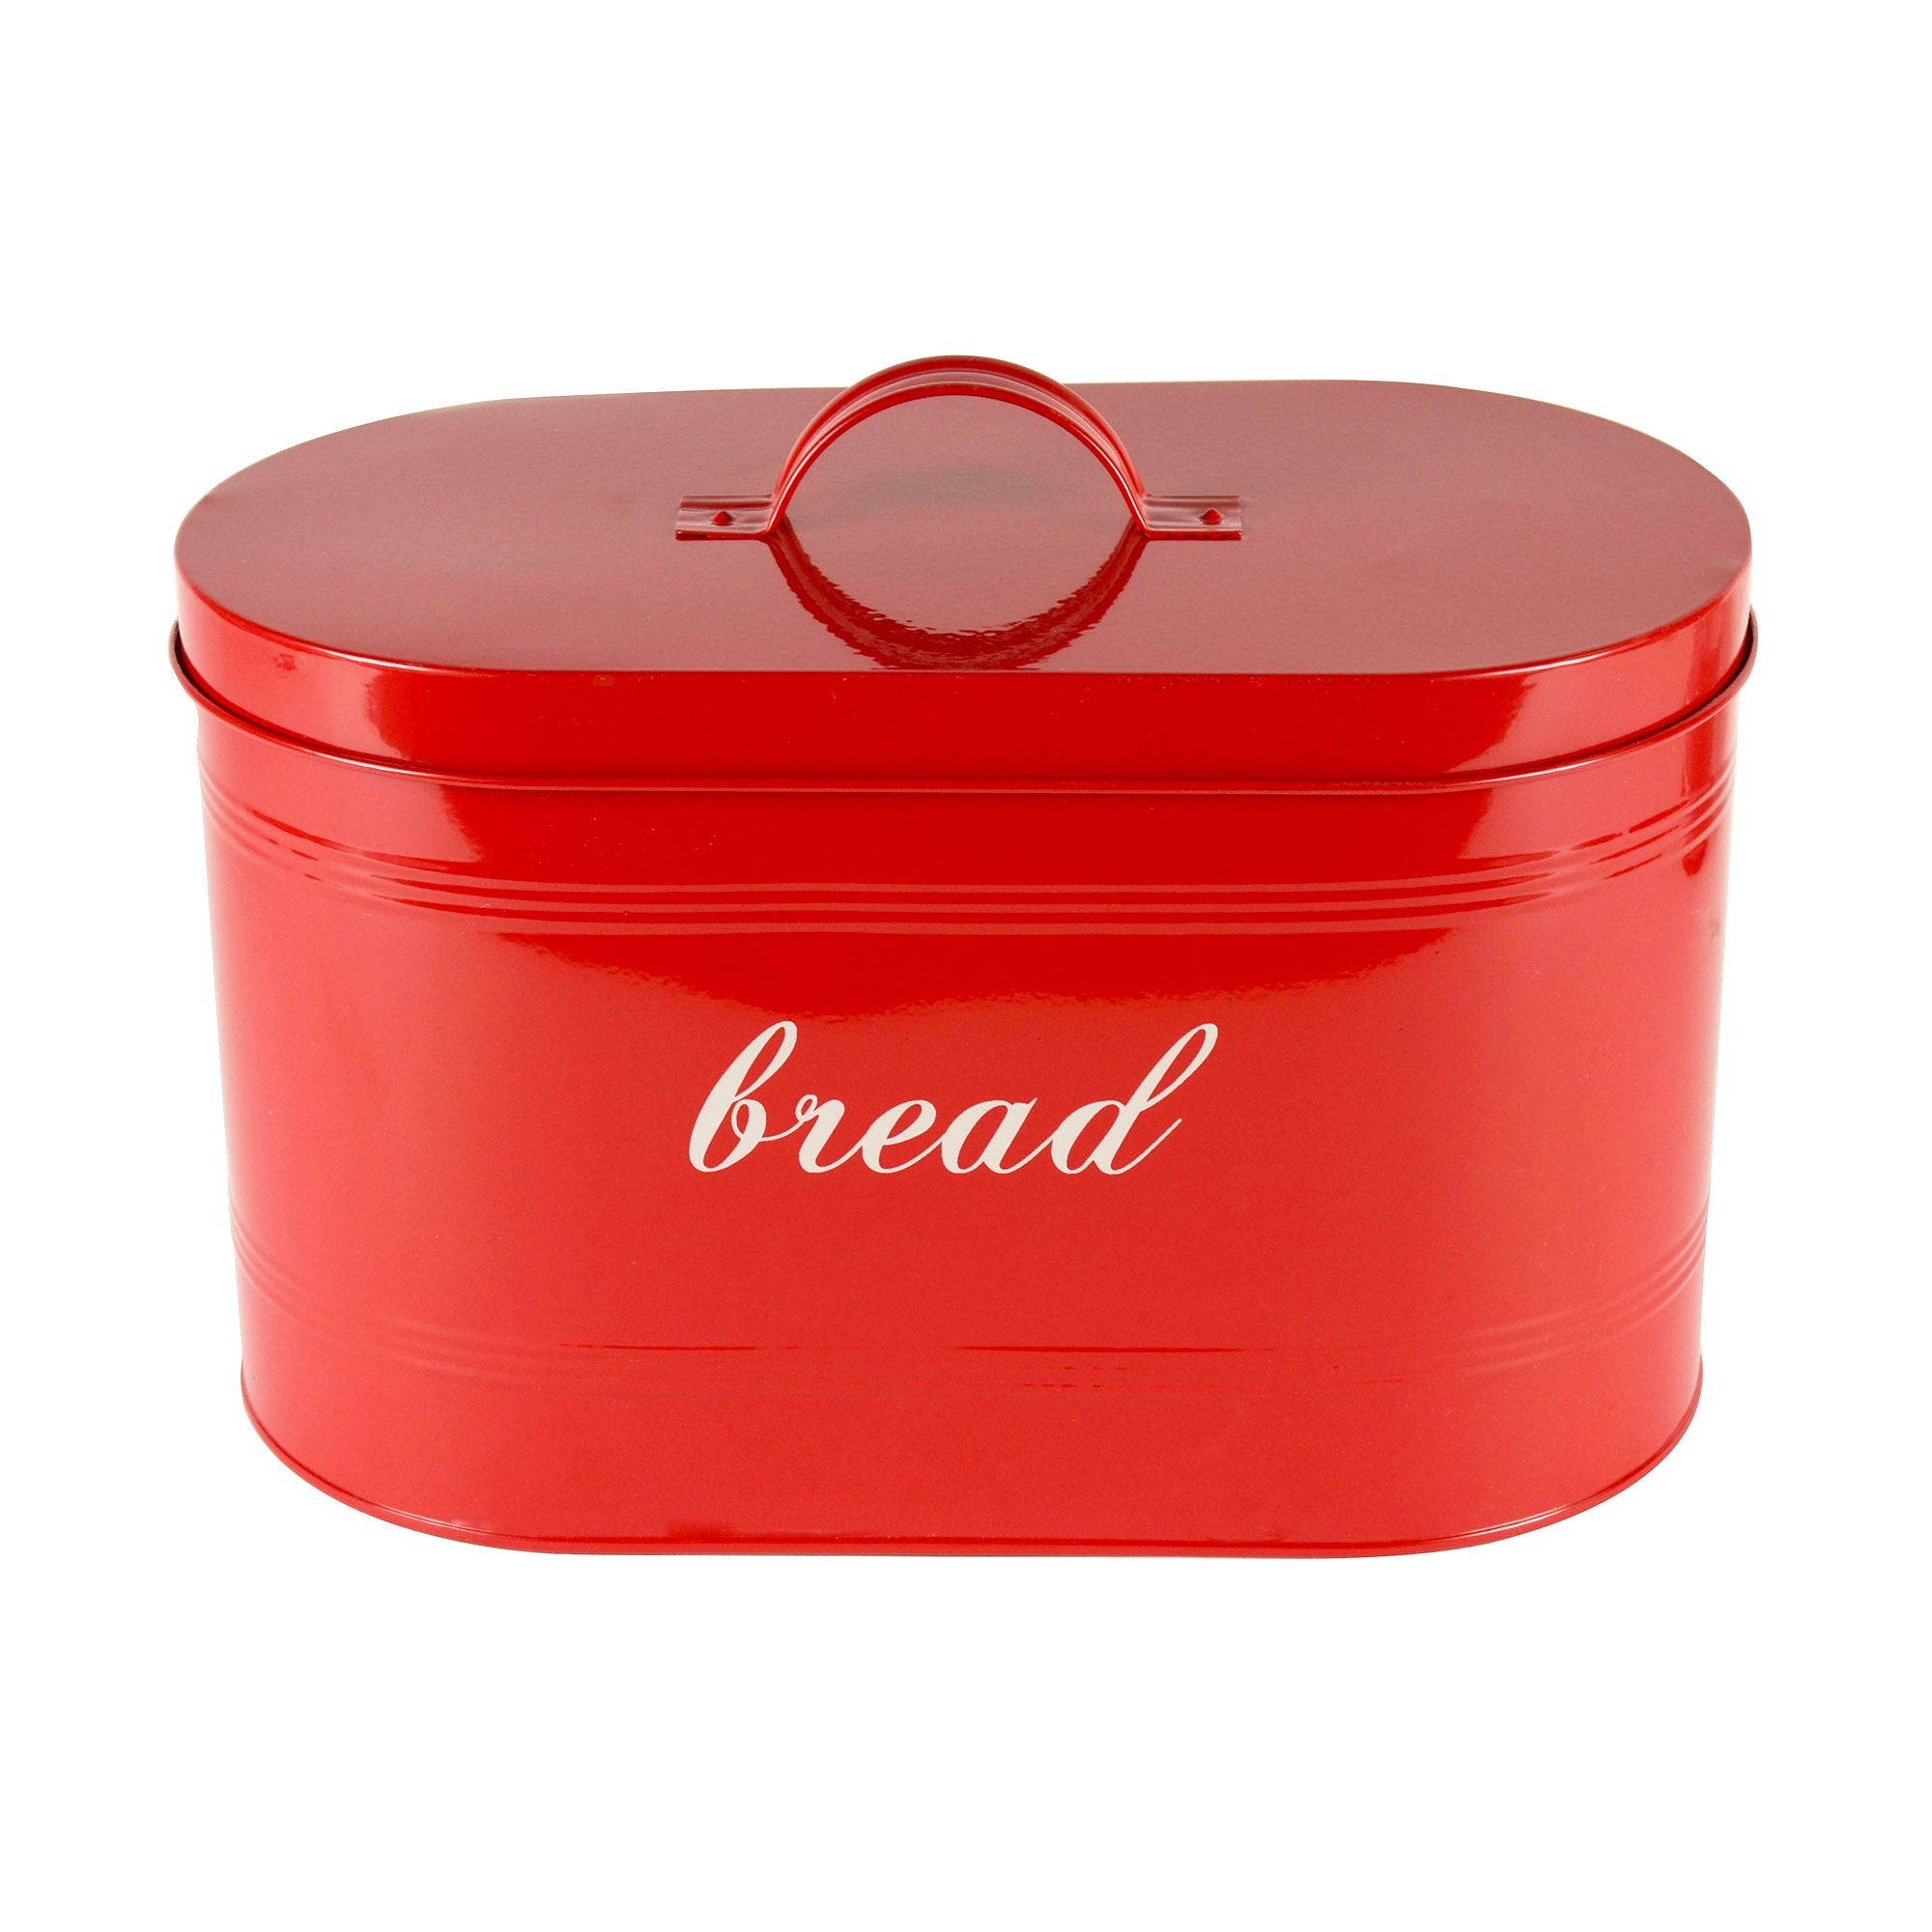 Farmhouse Collection Oval Bread Bin